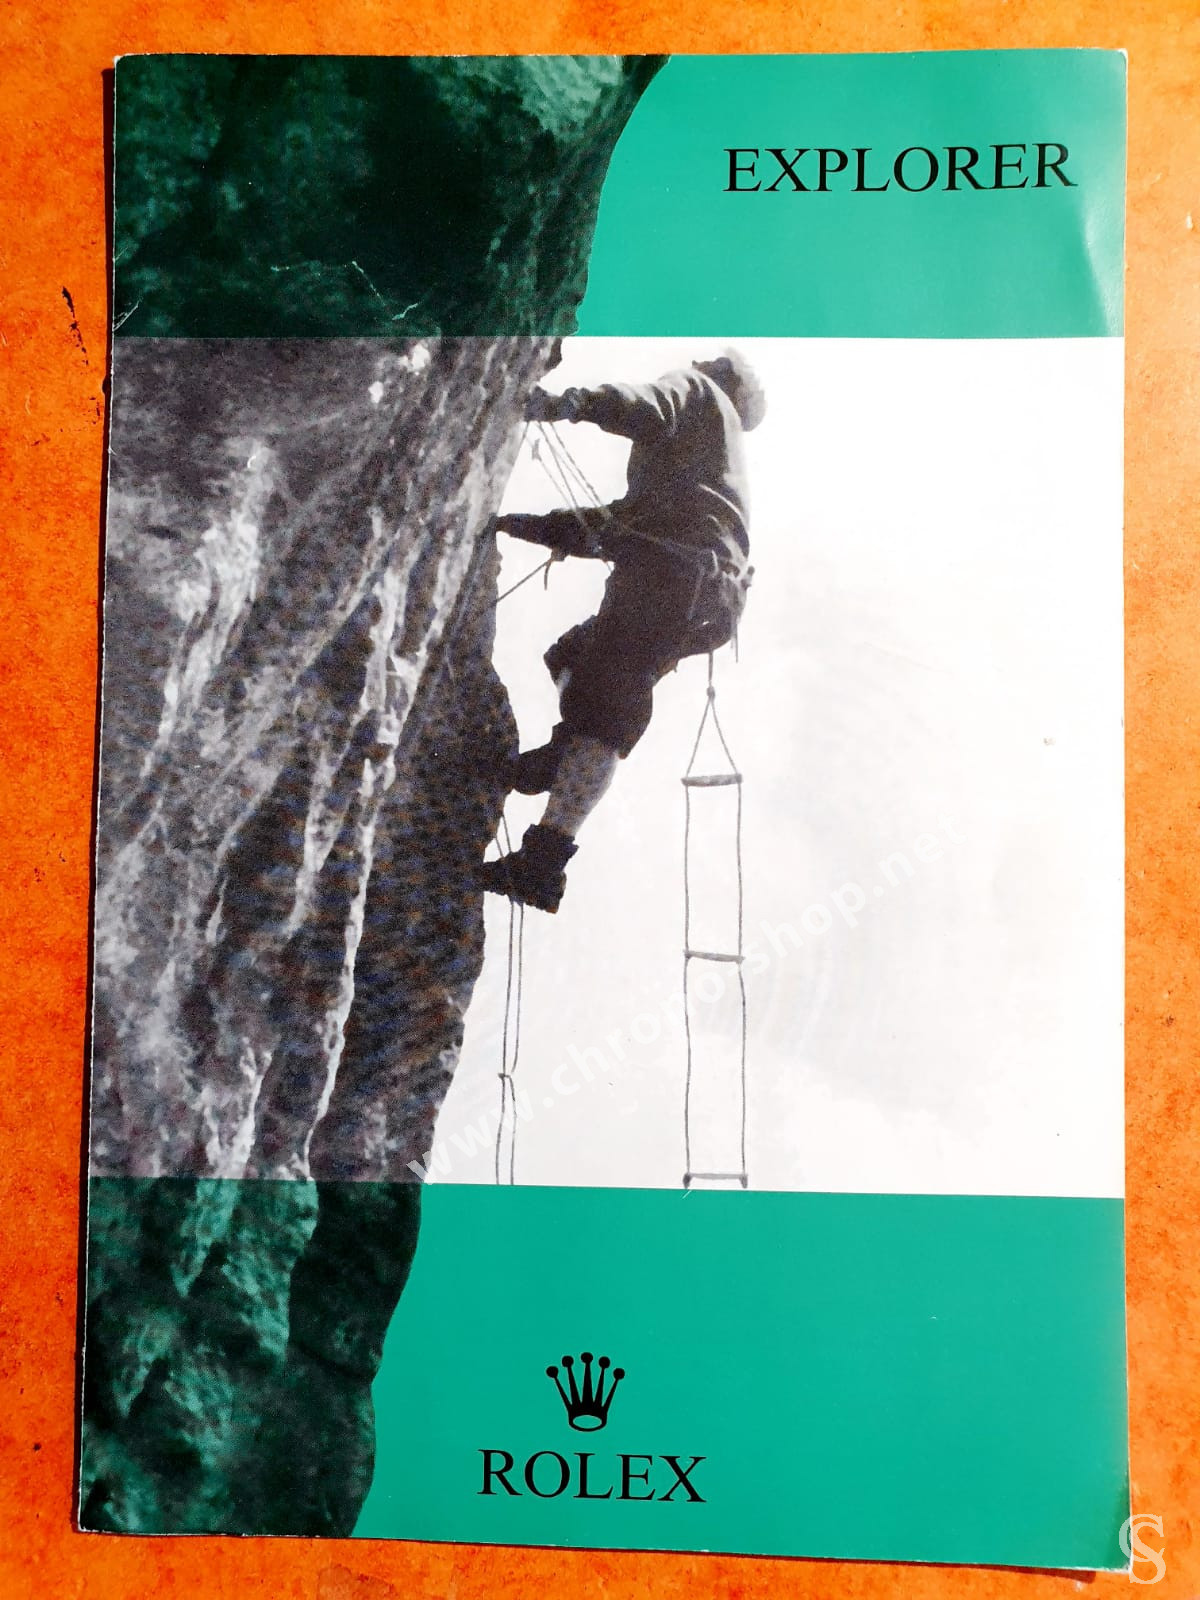 VINTAGE 1966 Rolex Brochure for EXPLORER MODEL 1016  EXTREMELY RARE COLLECTIBLE GOODIE